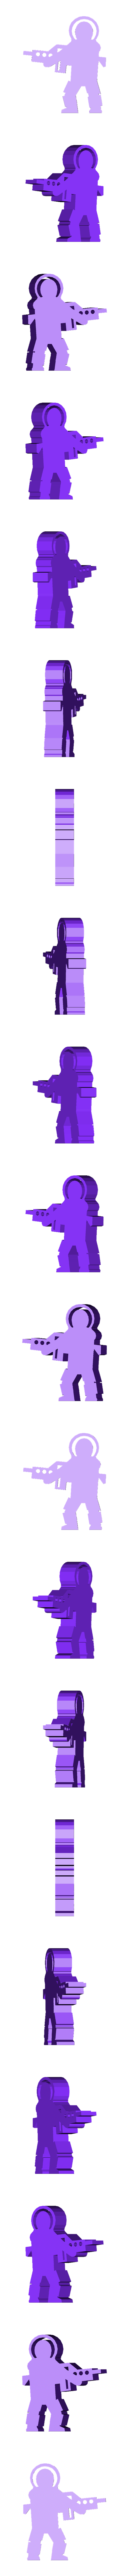 Astronaut Rifle Carry.stl Download STL file Rifle Carrying Astronaut Meeple • 3D printer design, Ellie_Valkyrie